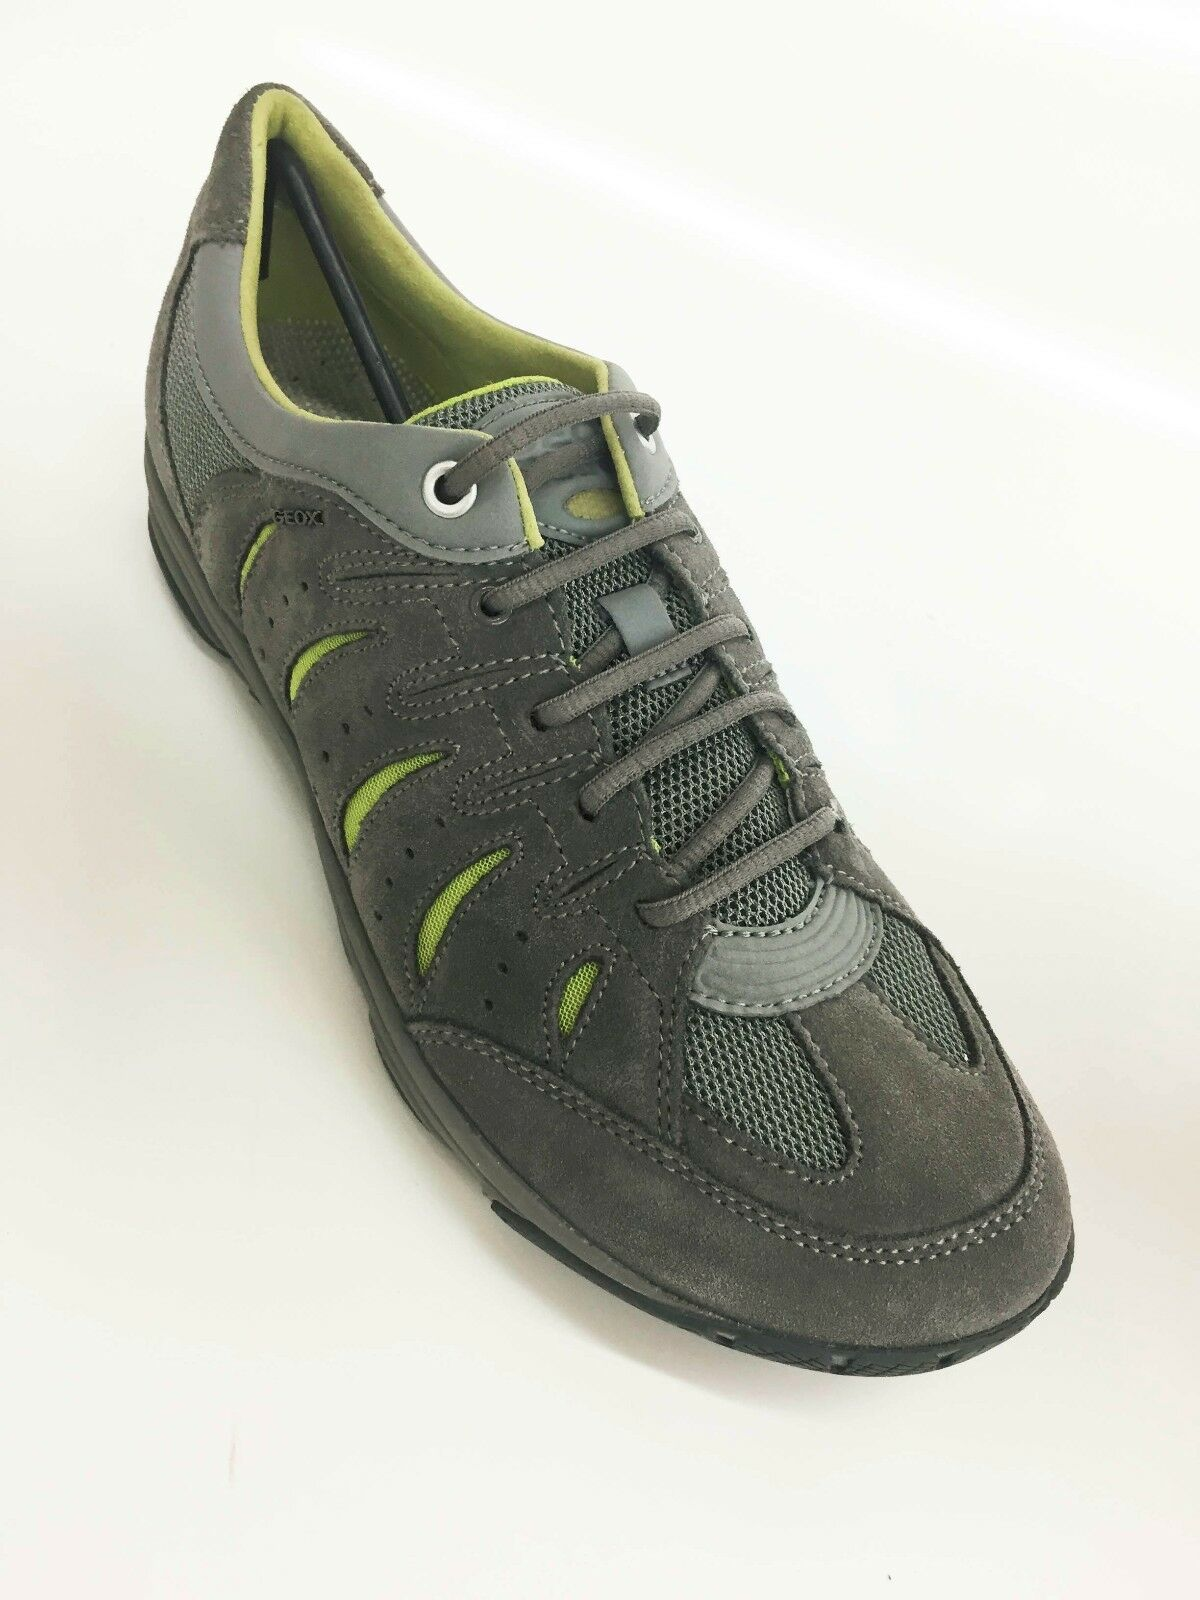 New Geox Men's Mxense1 Sneaker shoes Grey green sz 7